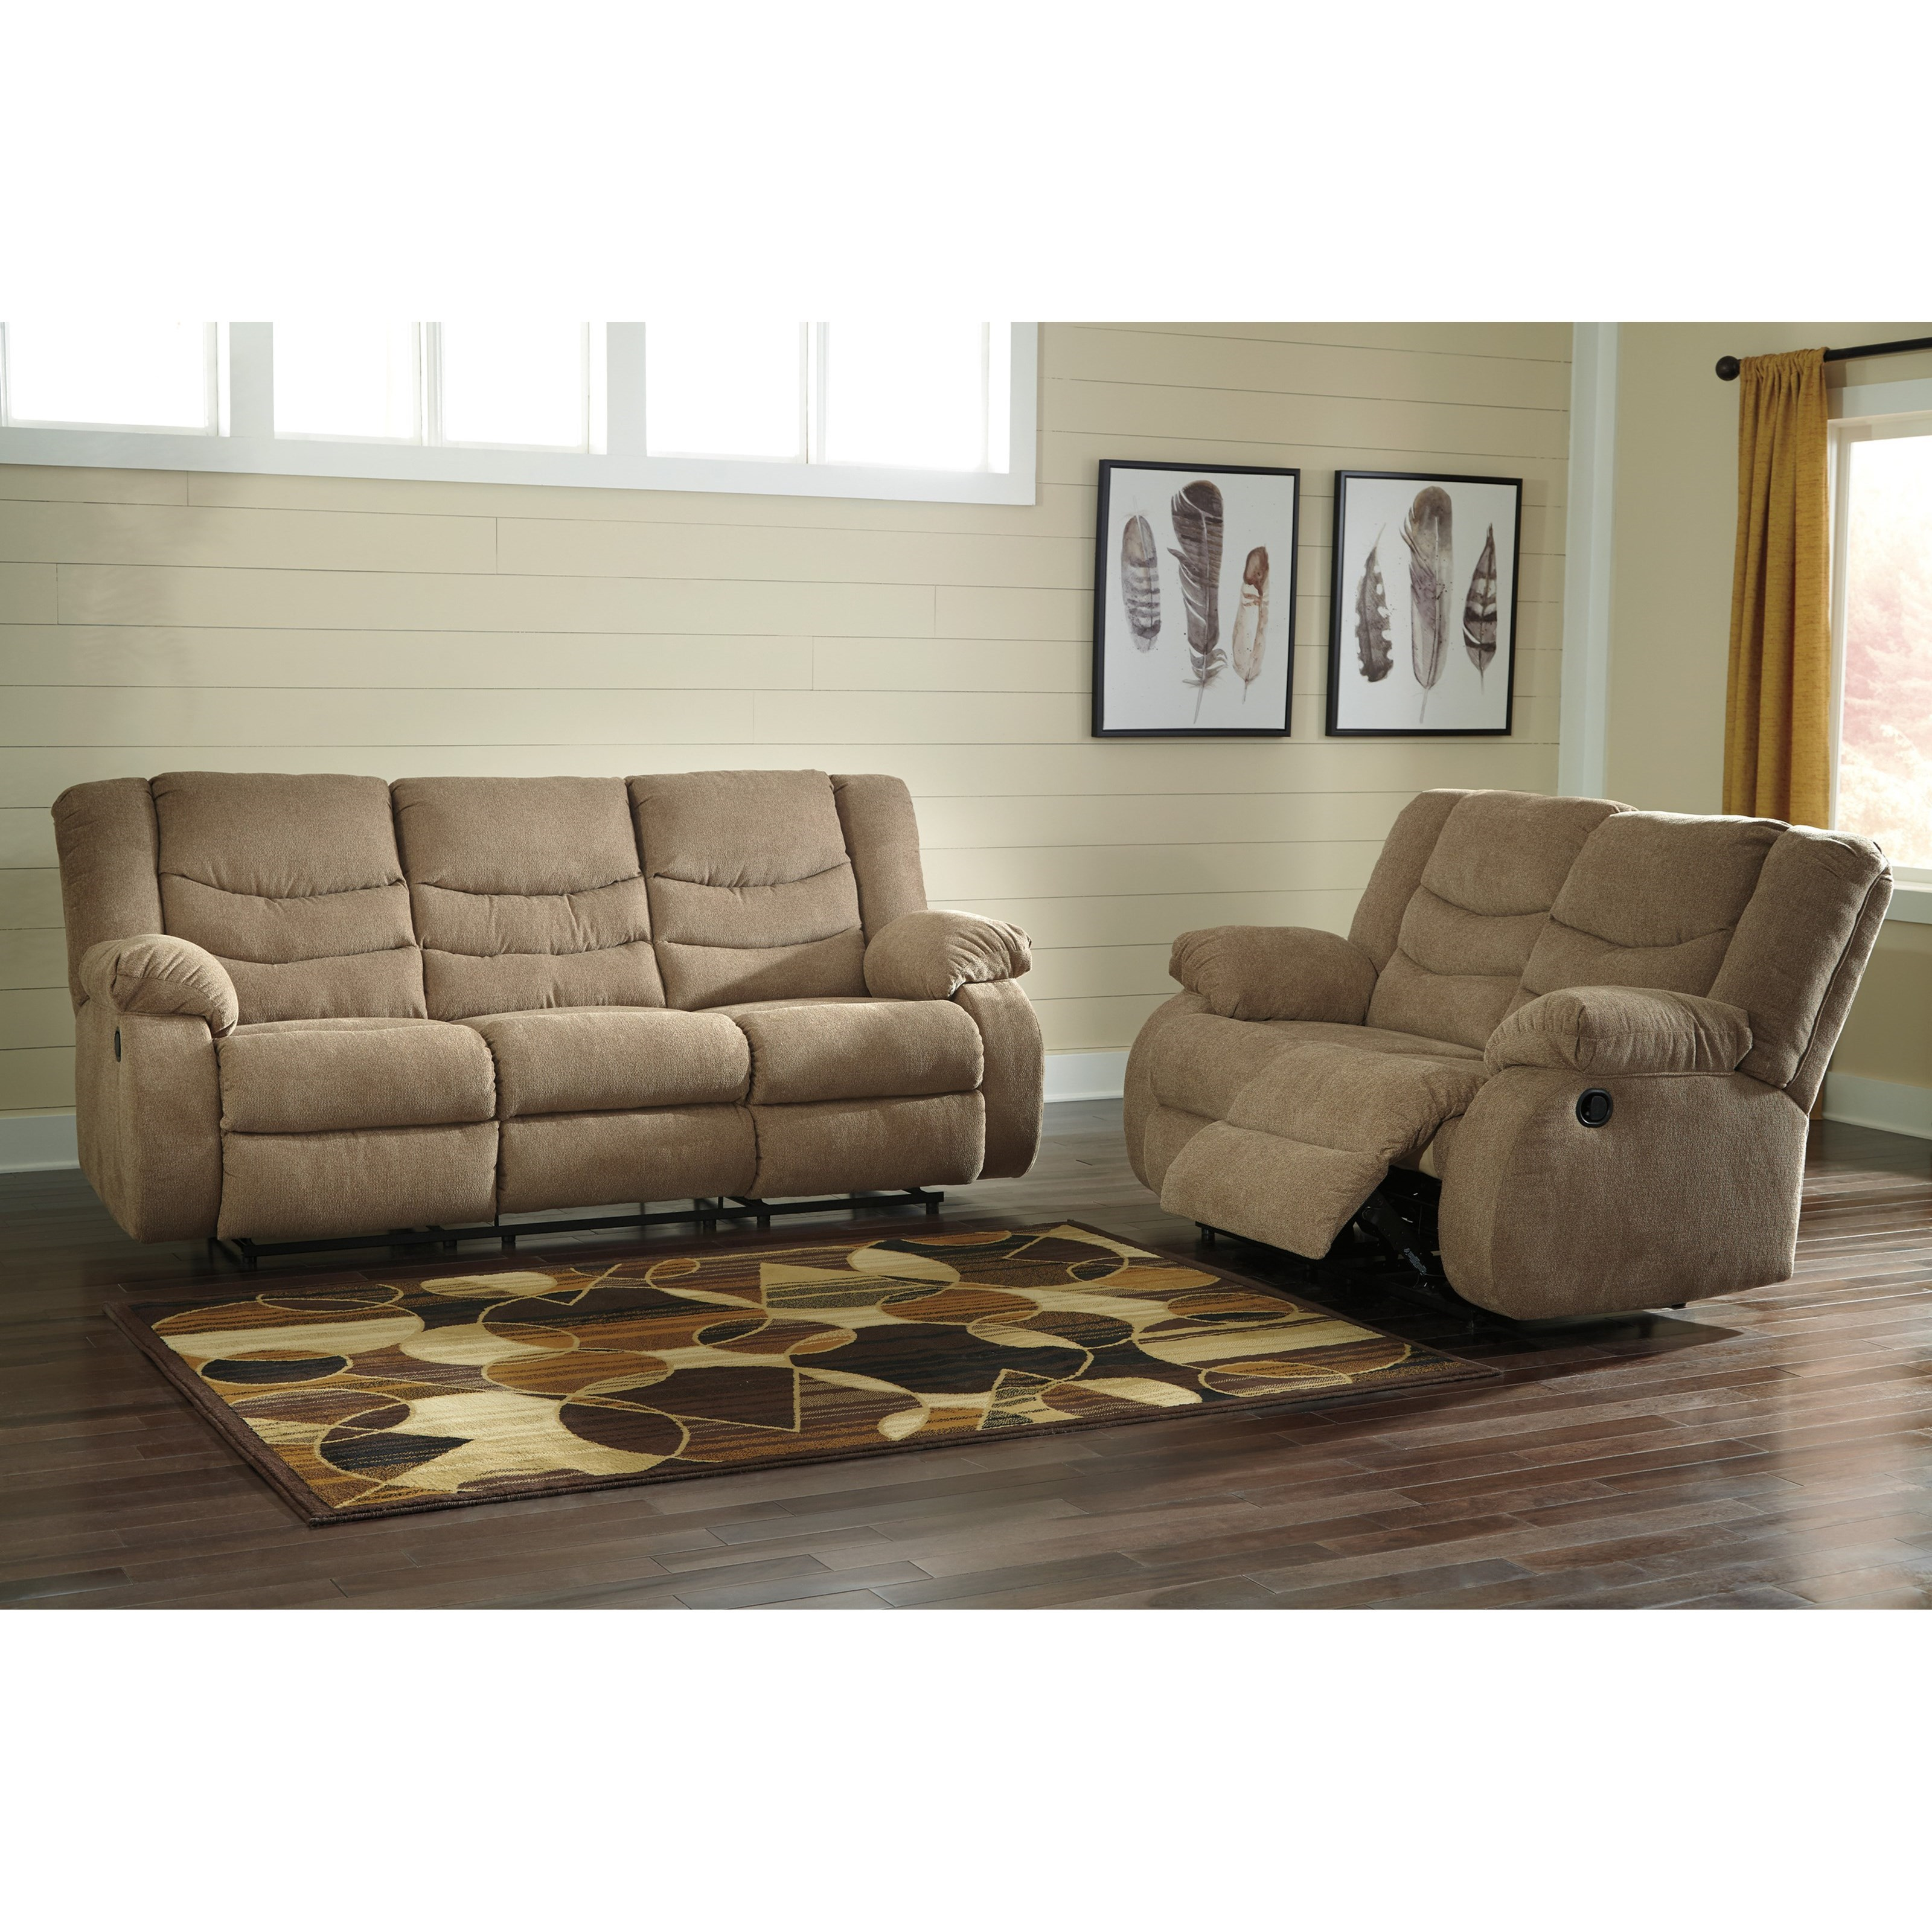 Signature Design by Ashley Tulen Reclining Living Room